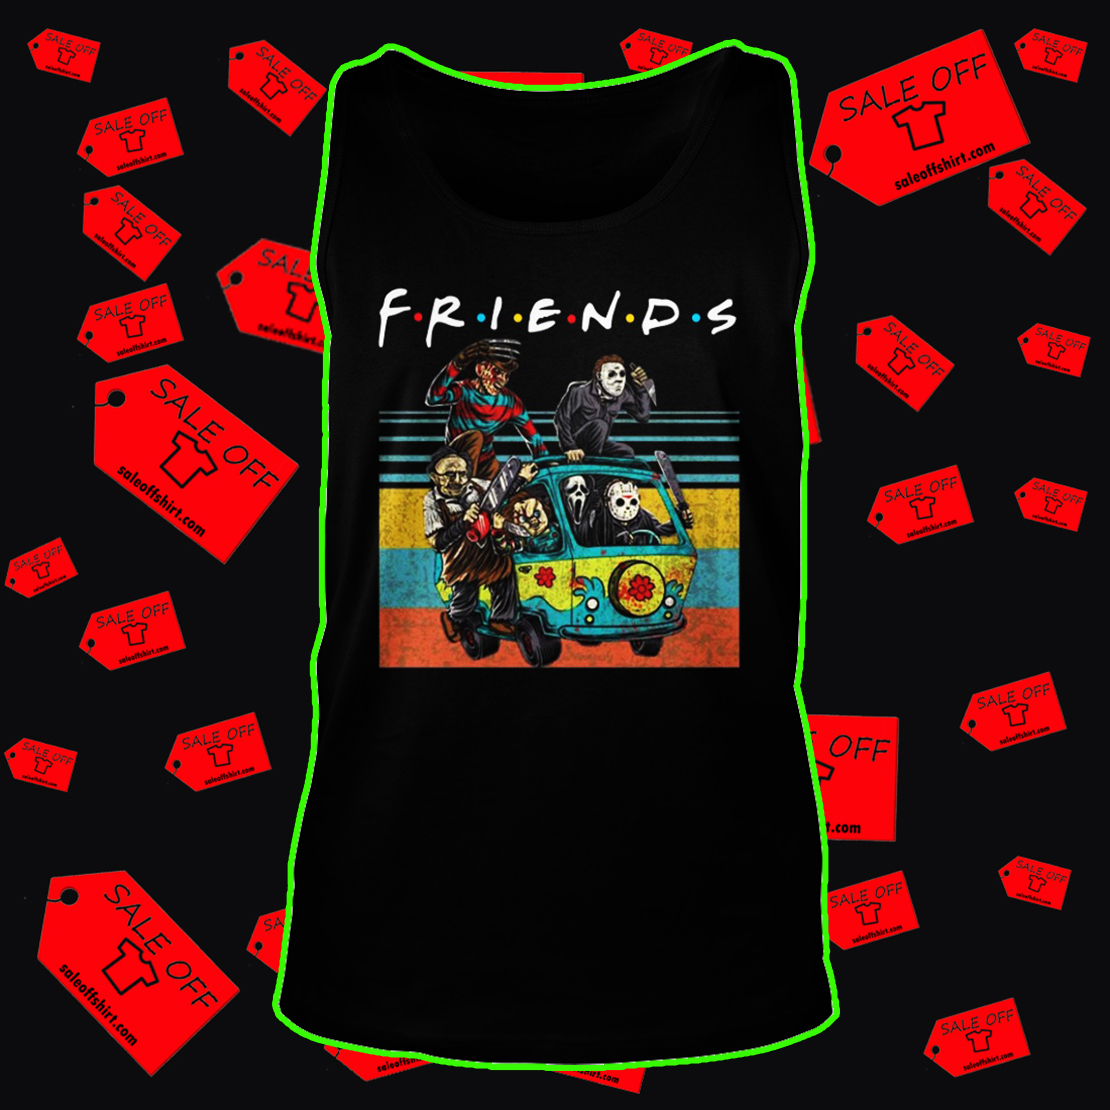 Car Horror movie characters Friends TV show tank top